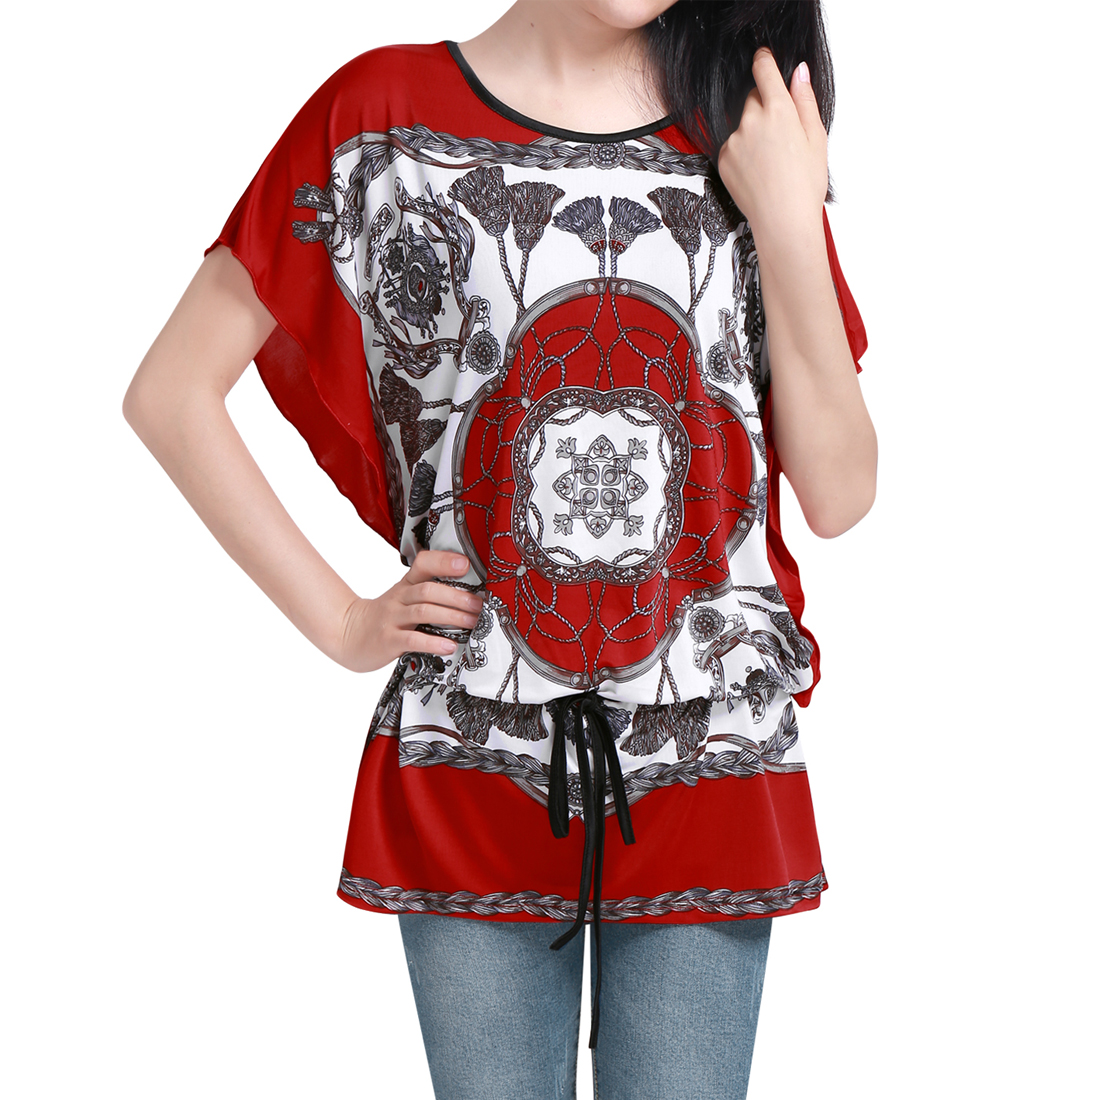 5715 Women Round Neck Batwing Sleeve Semi Sheer Pullover Tunic Shirt